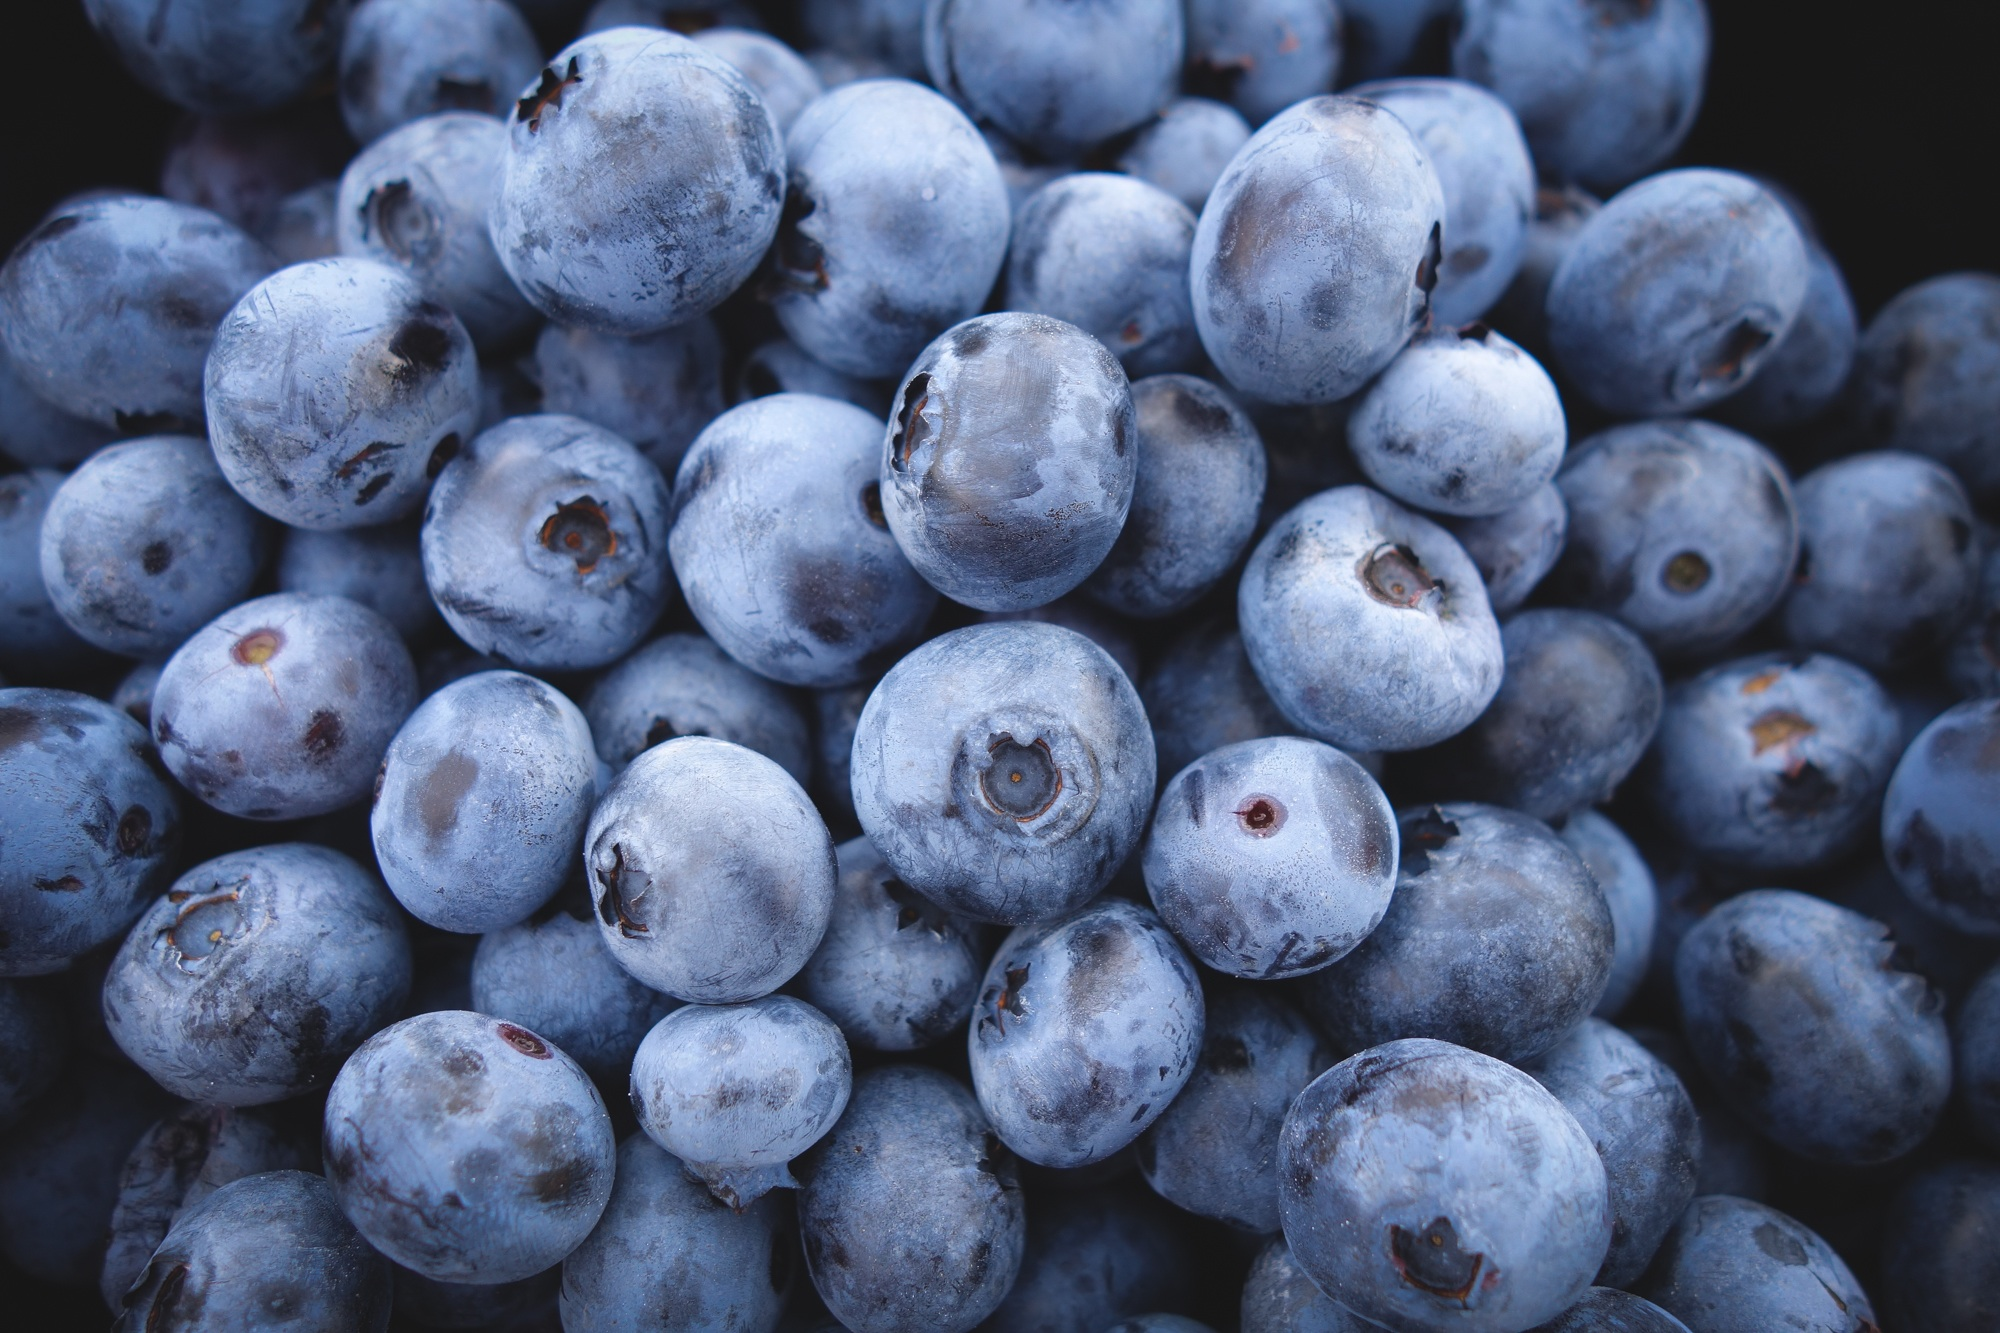 Blueberries.jpeg